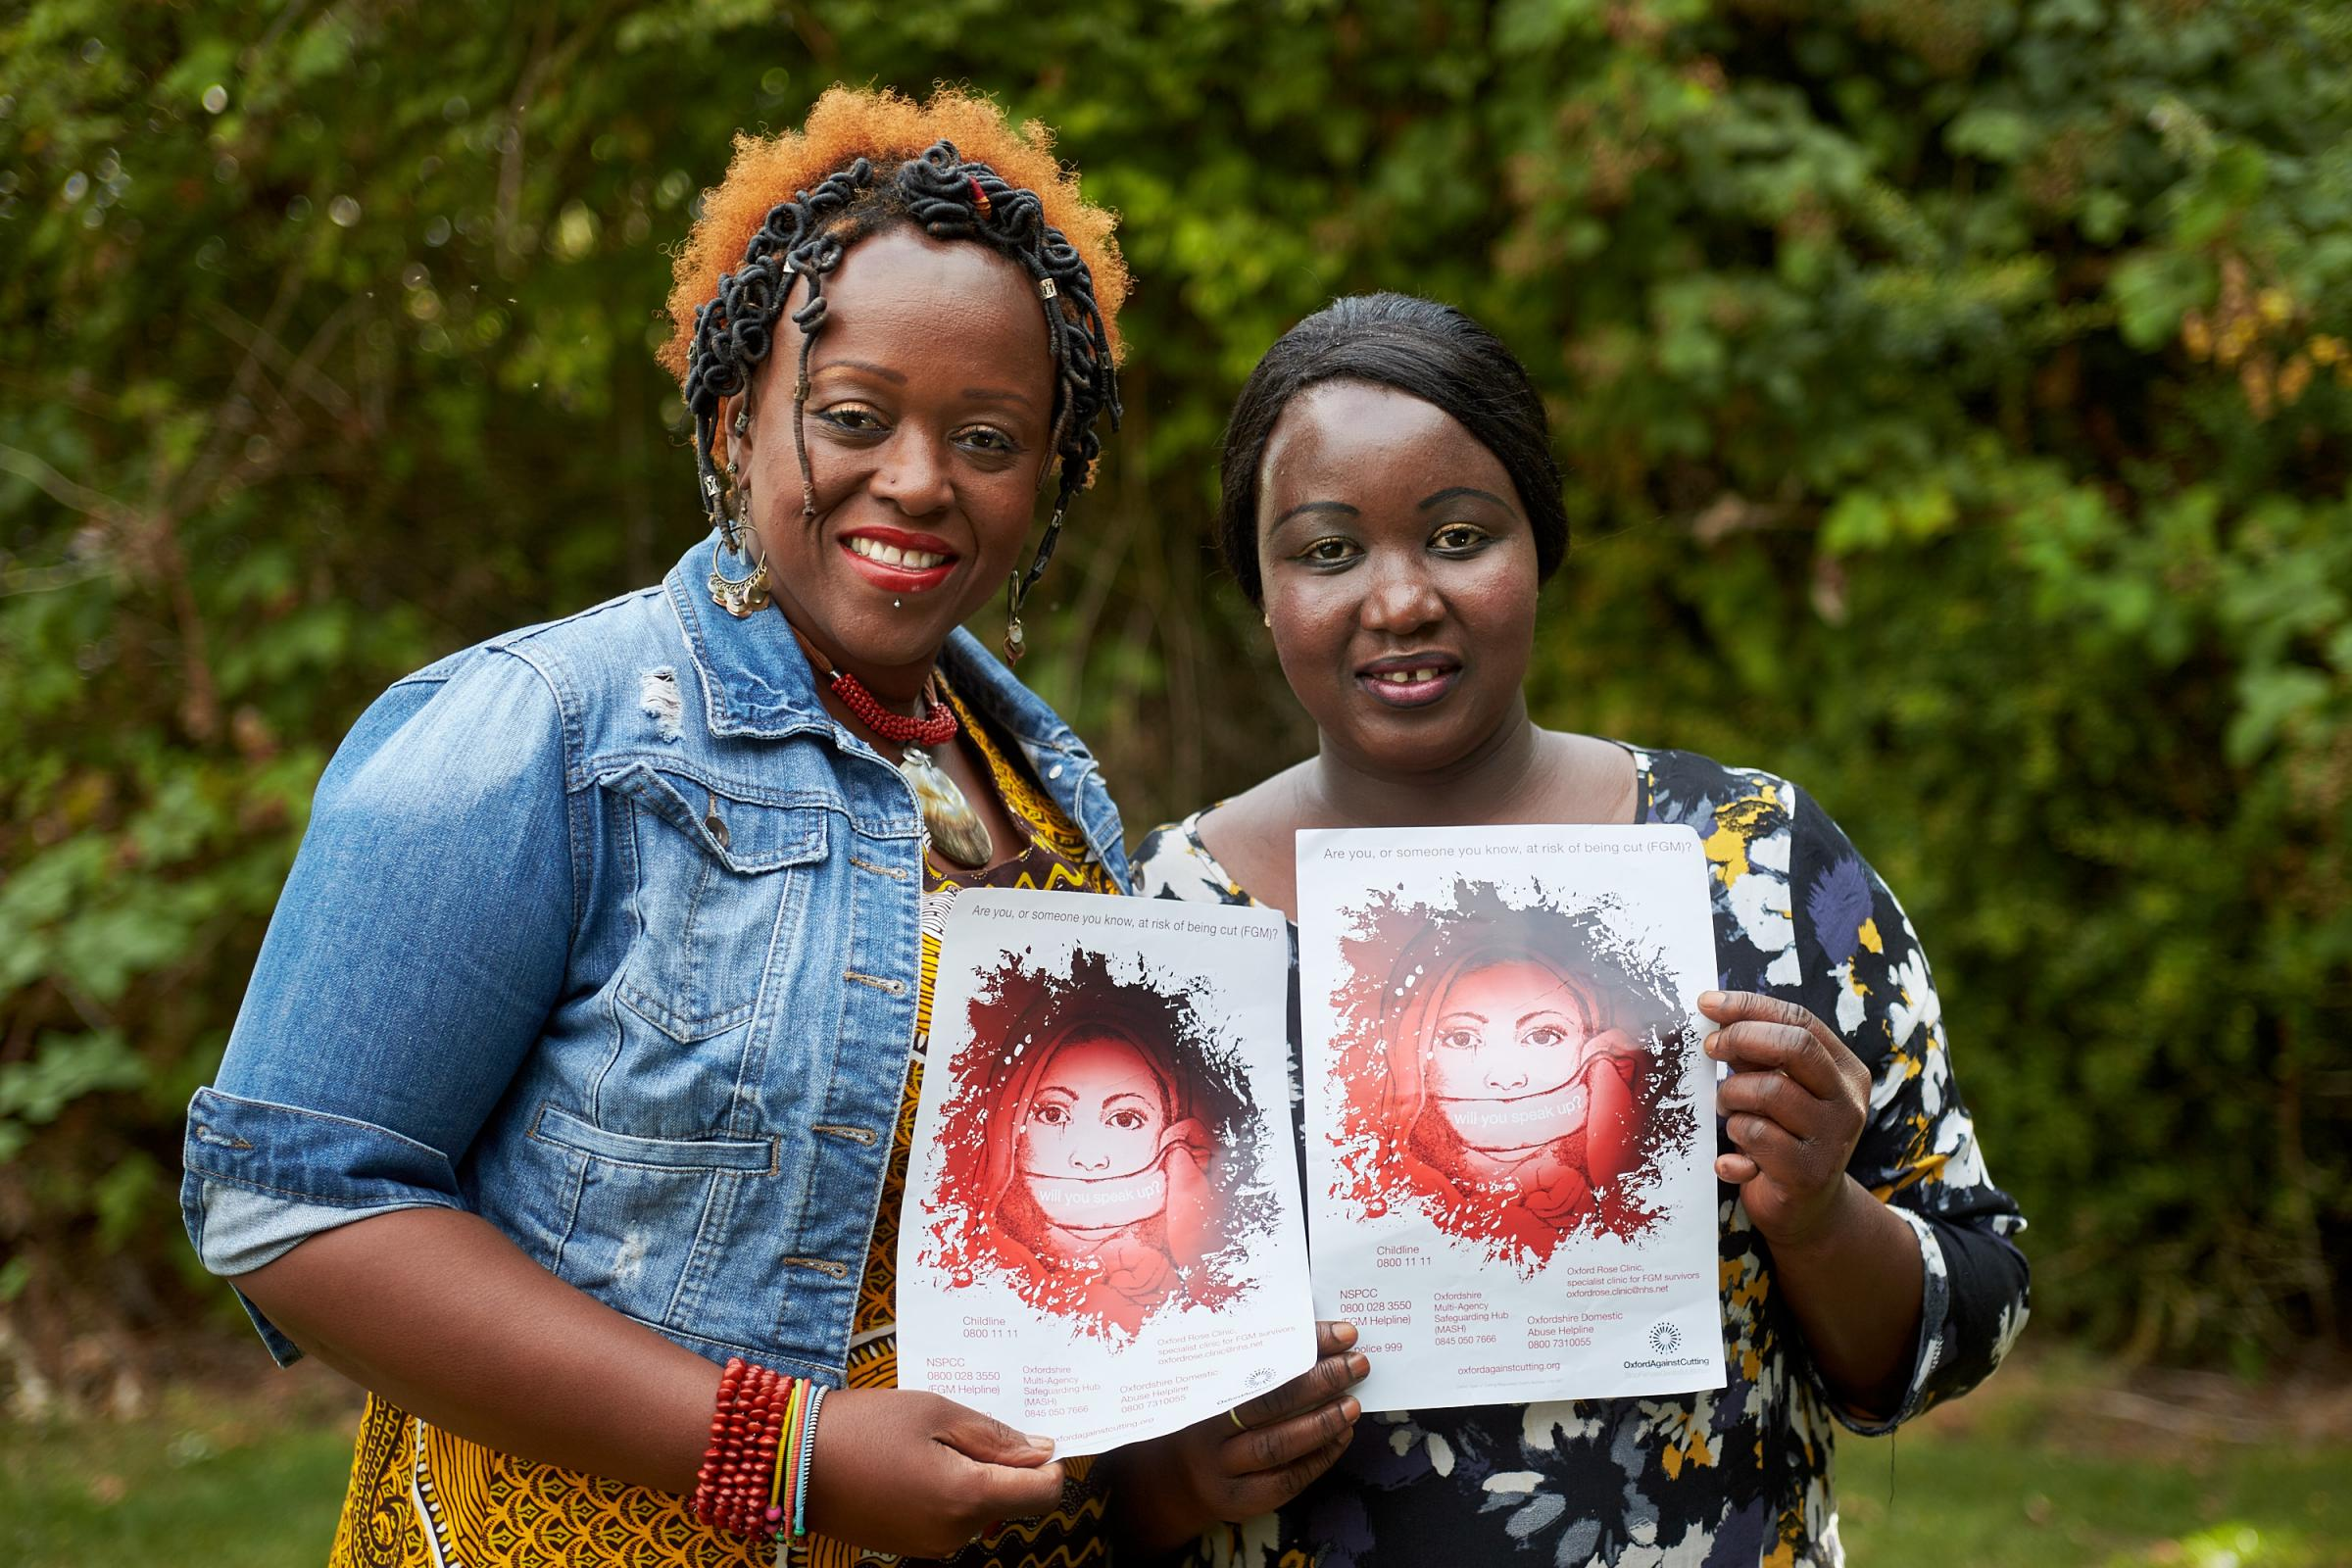 Campaign: Dianne Regisford, left, and Kaddy Touray from Oxford Against Cutting